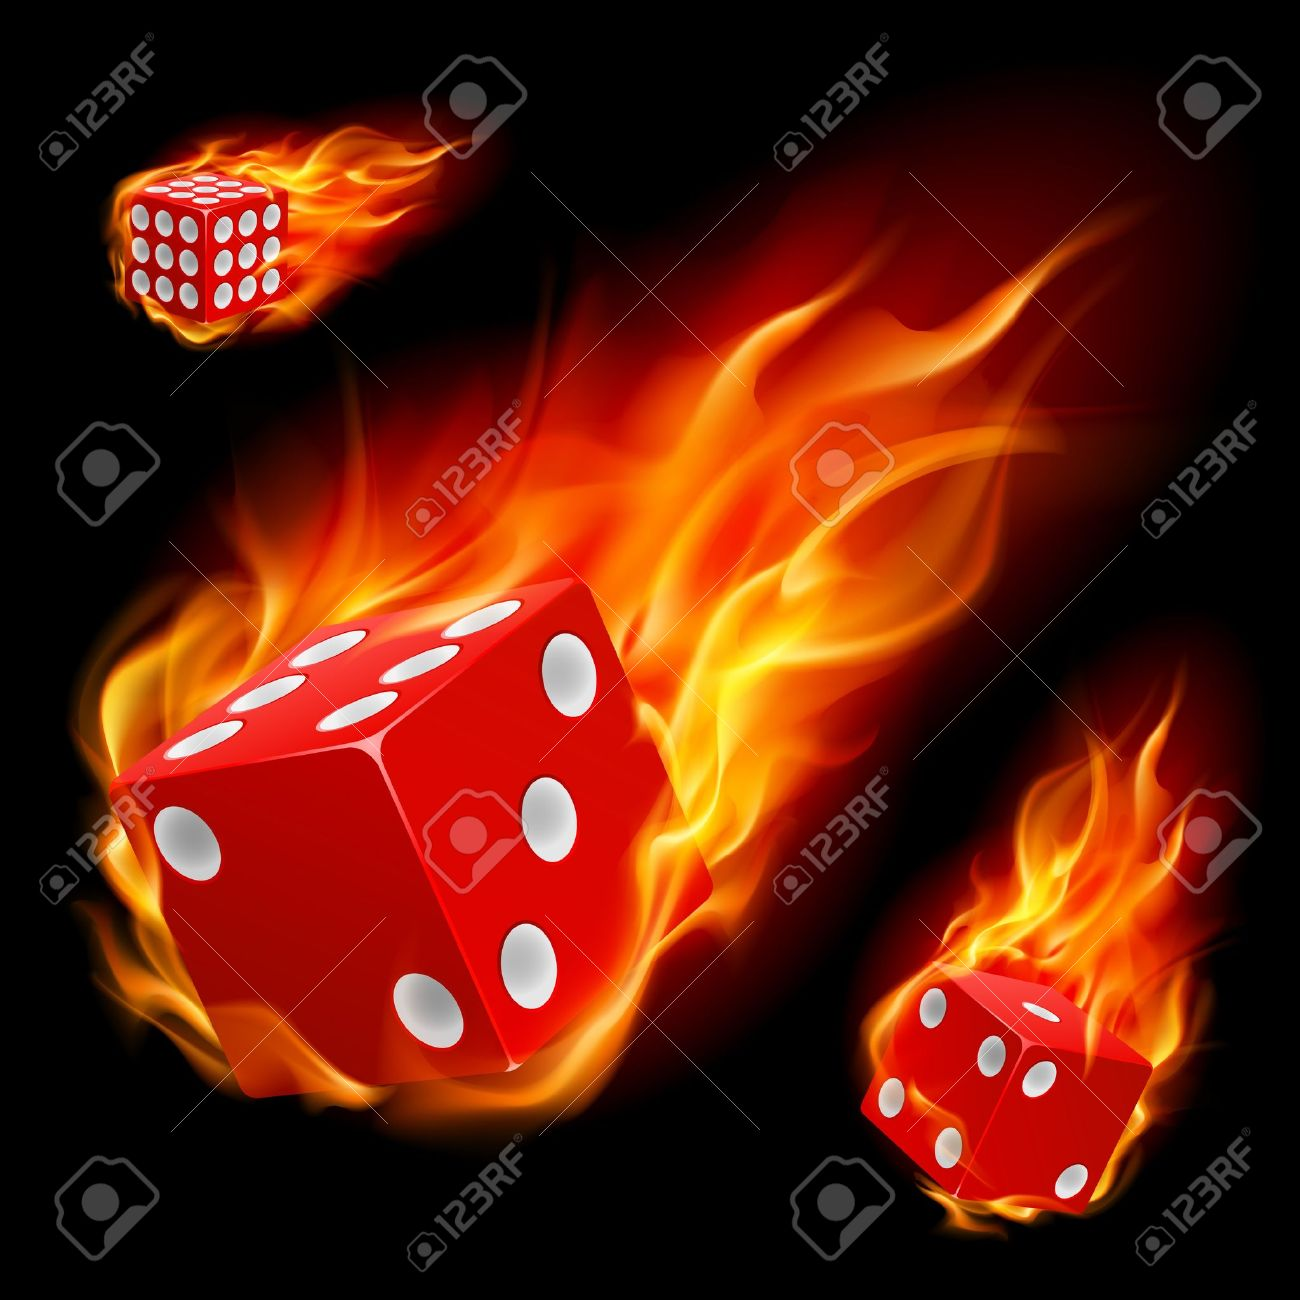 Dice in fire. Illustration on black background Stock Vector - 10083096